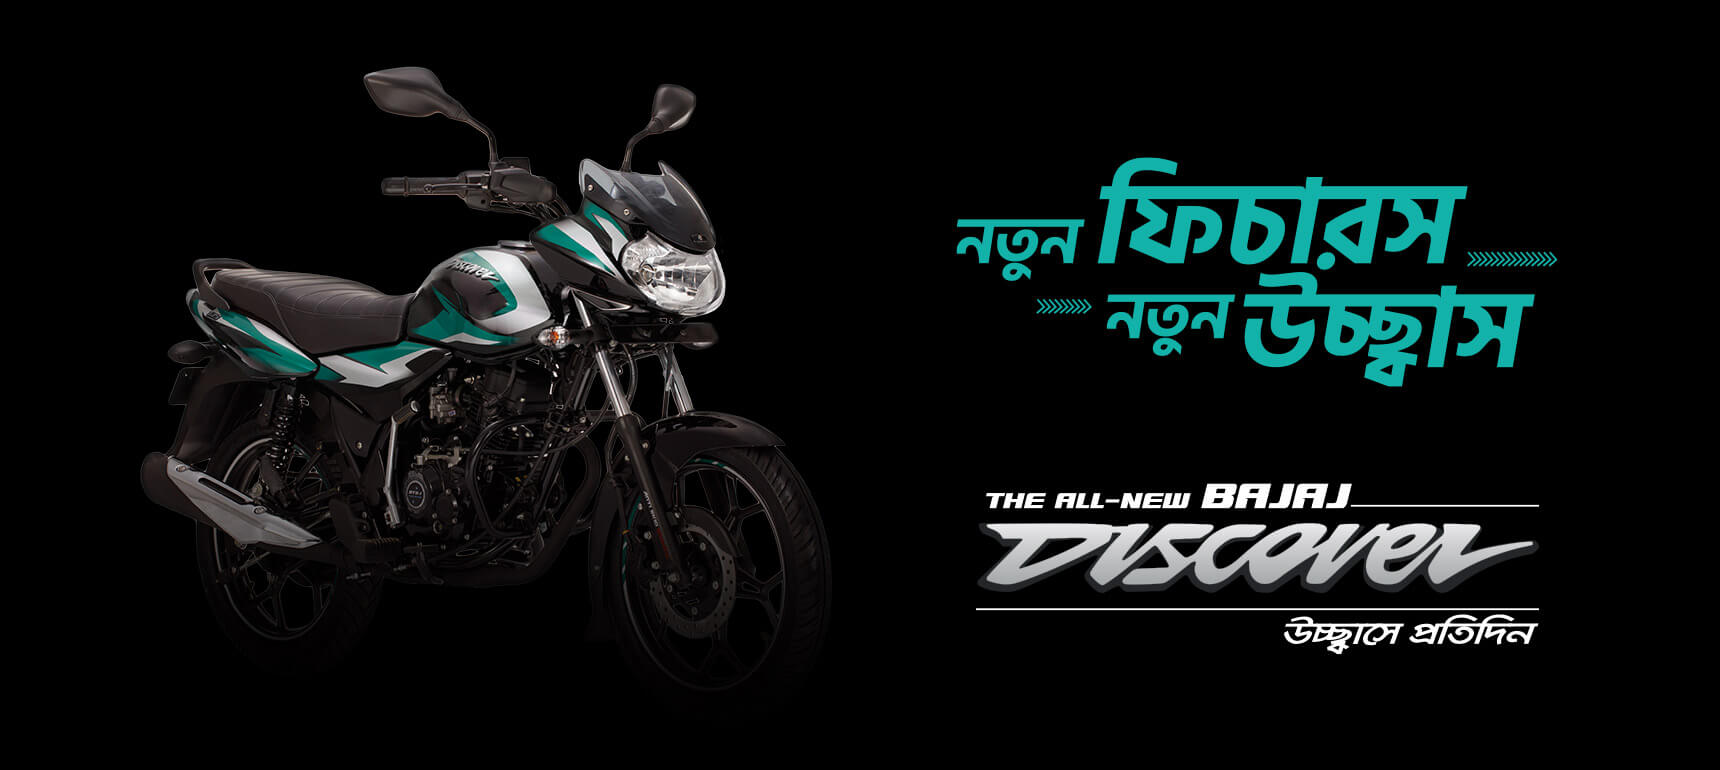 black and green color bajaj discover 125cc disc motorcycle 2021 model with new features